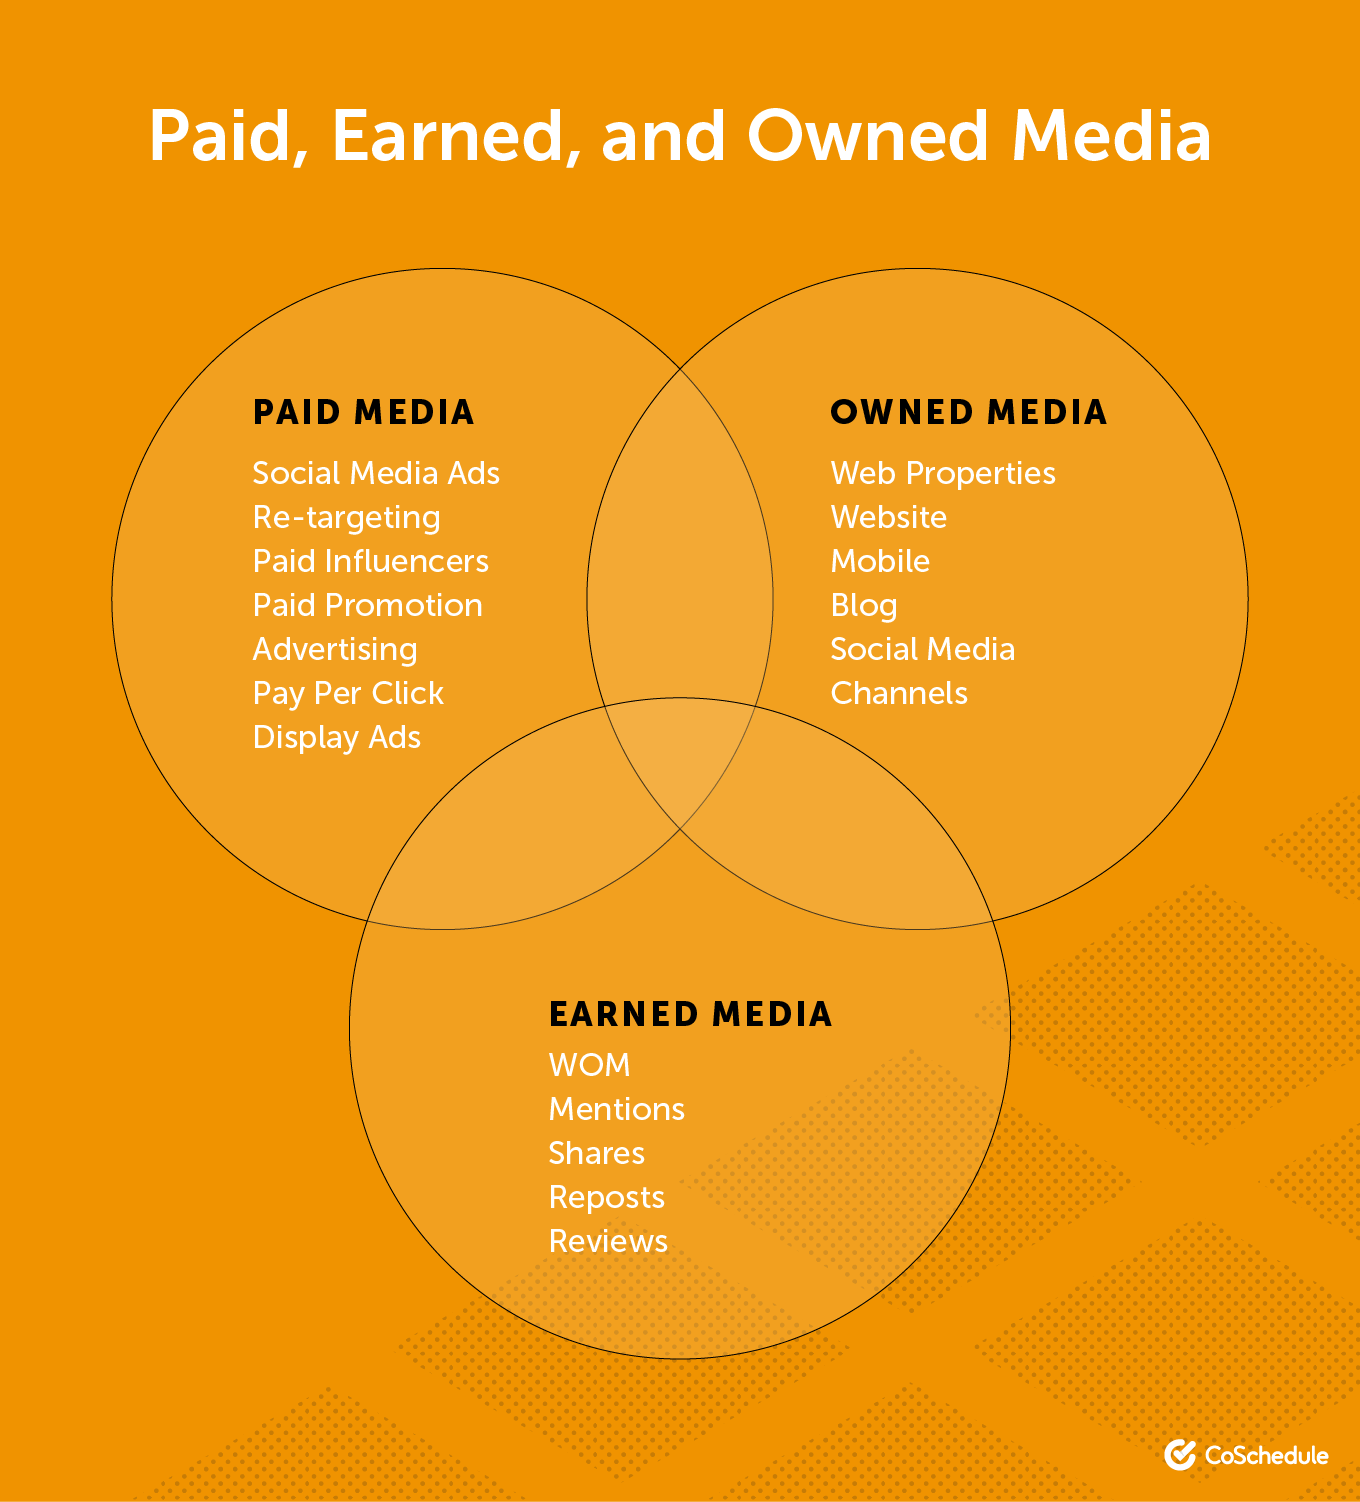 Diagram of paid, earned, and owned media